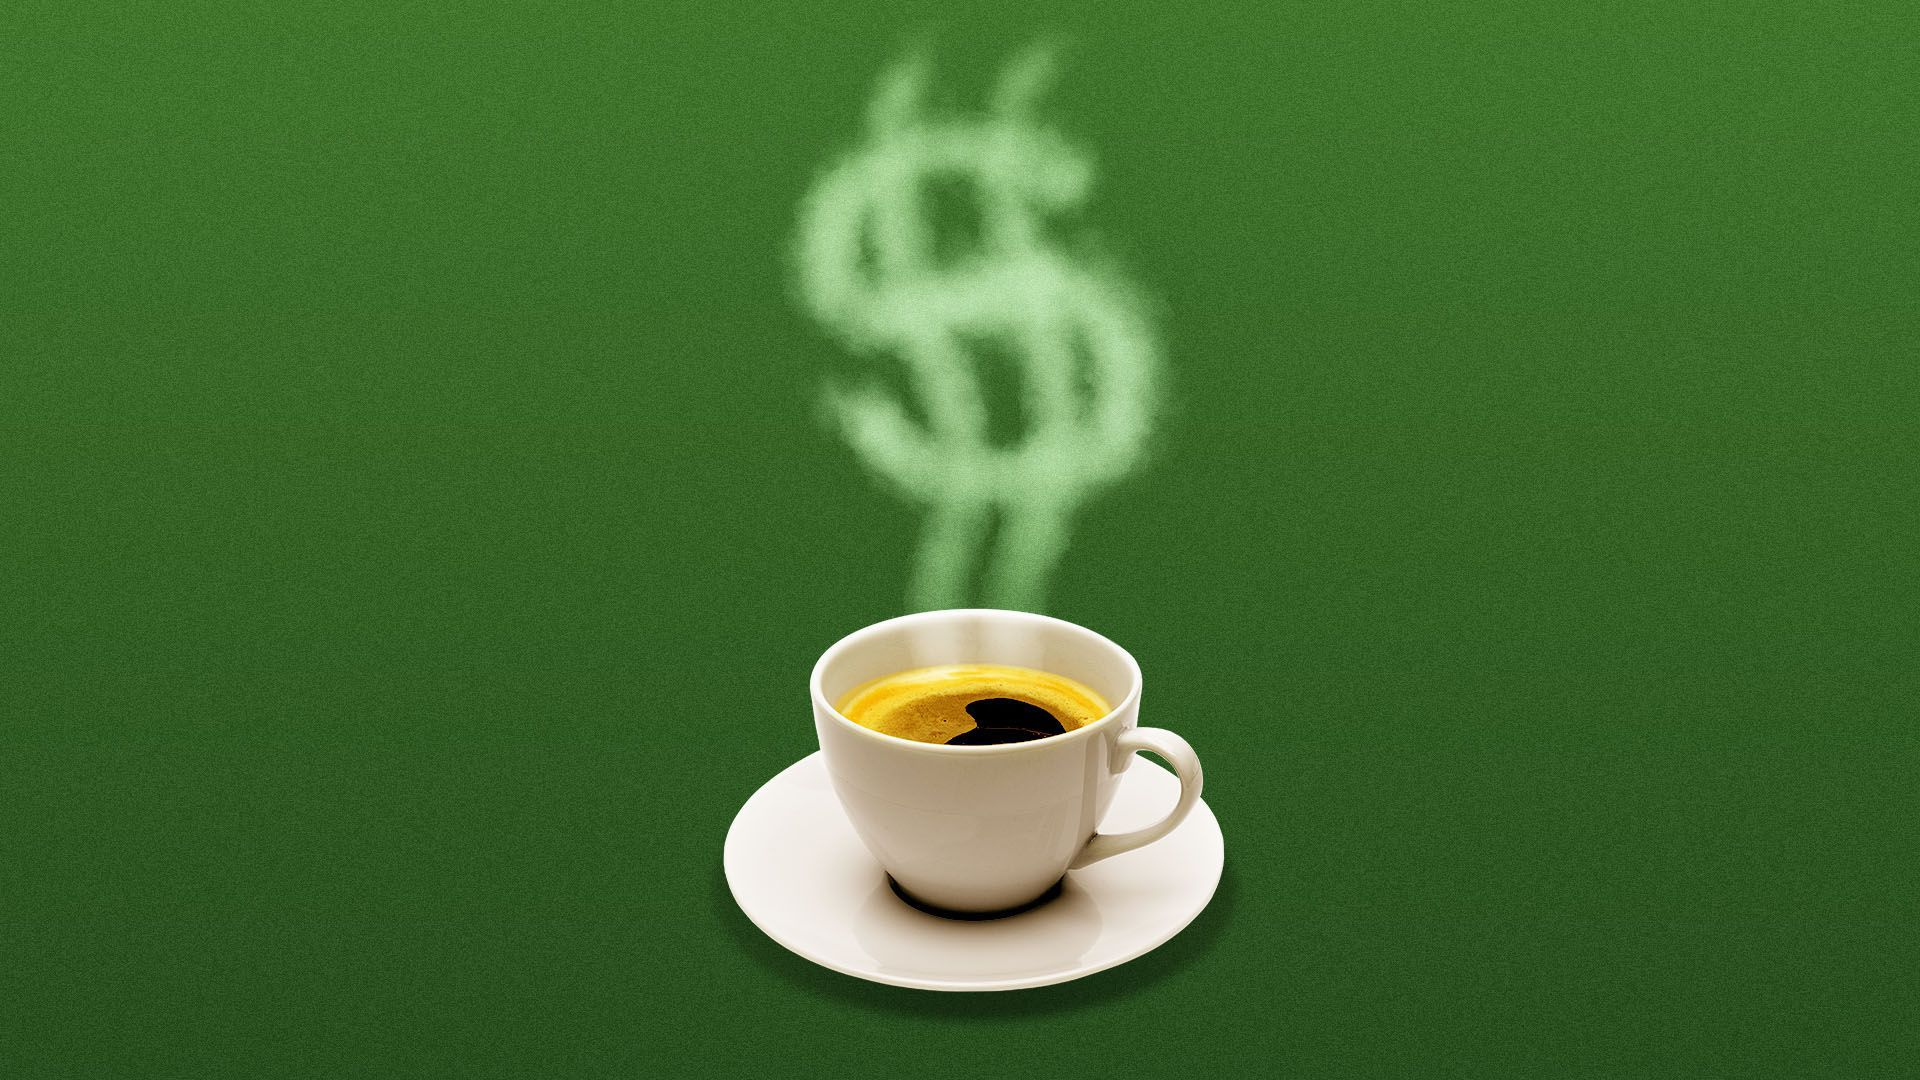 Illustration of a coffee cup with steam in the shape of a dollar sign.